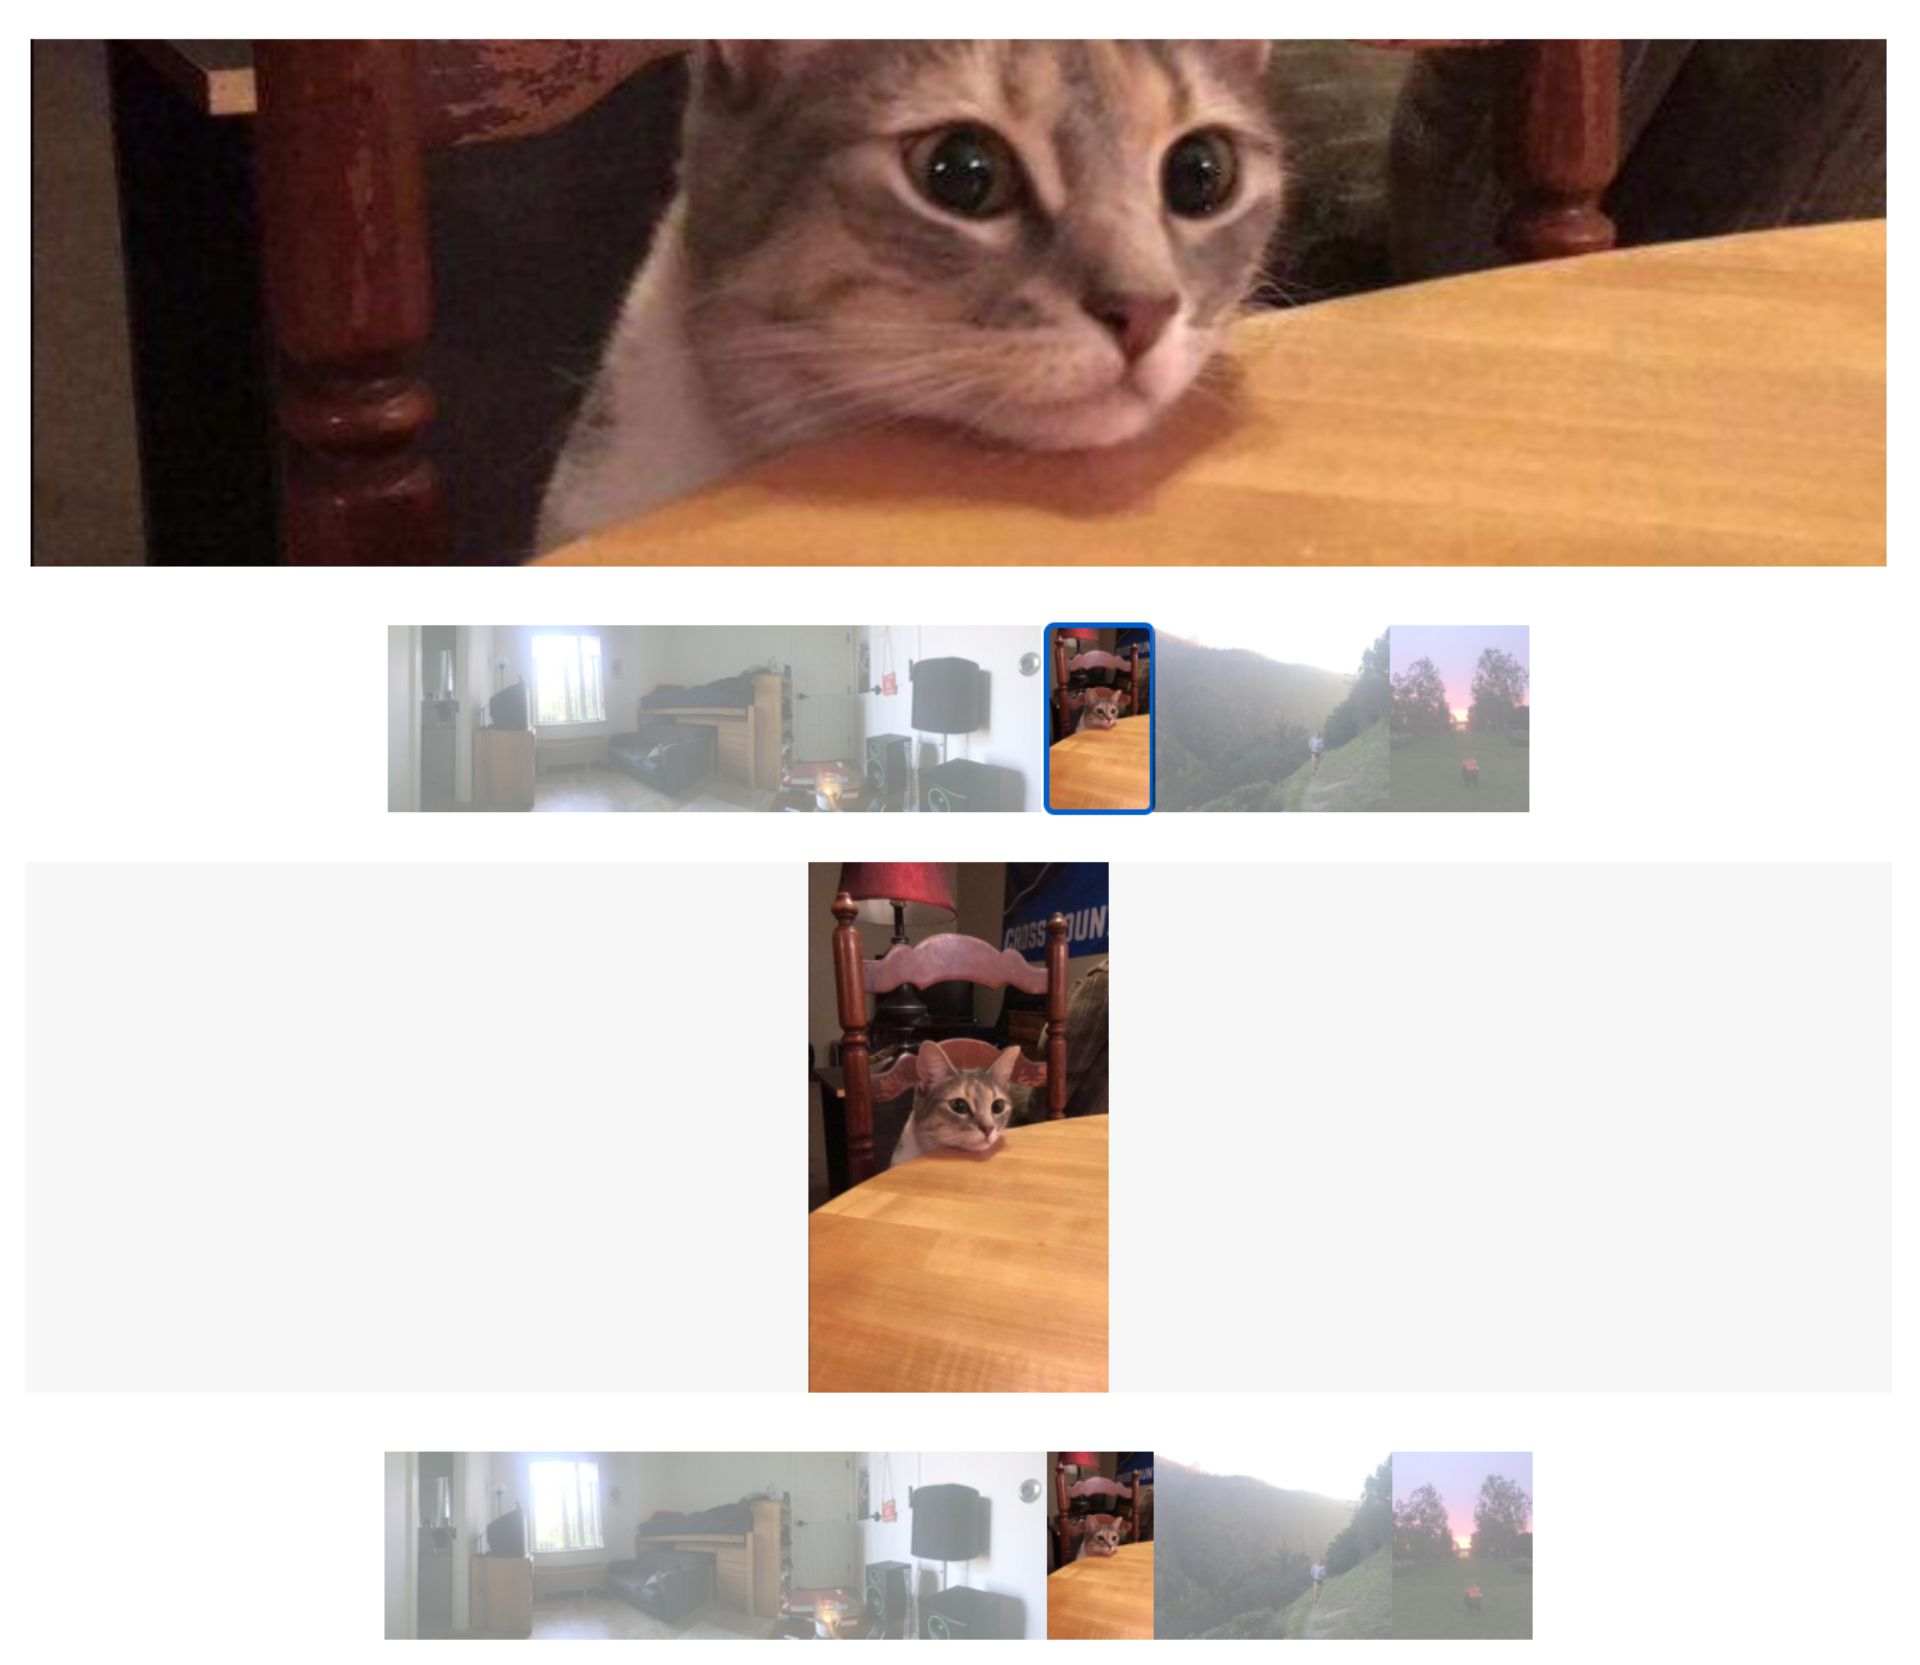 Screenshots showing how images are cropped or reduced in size when displayed in Squarespace's Slideshow block.